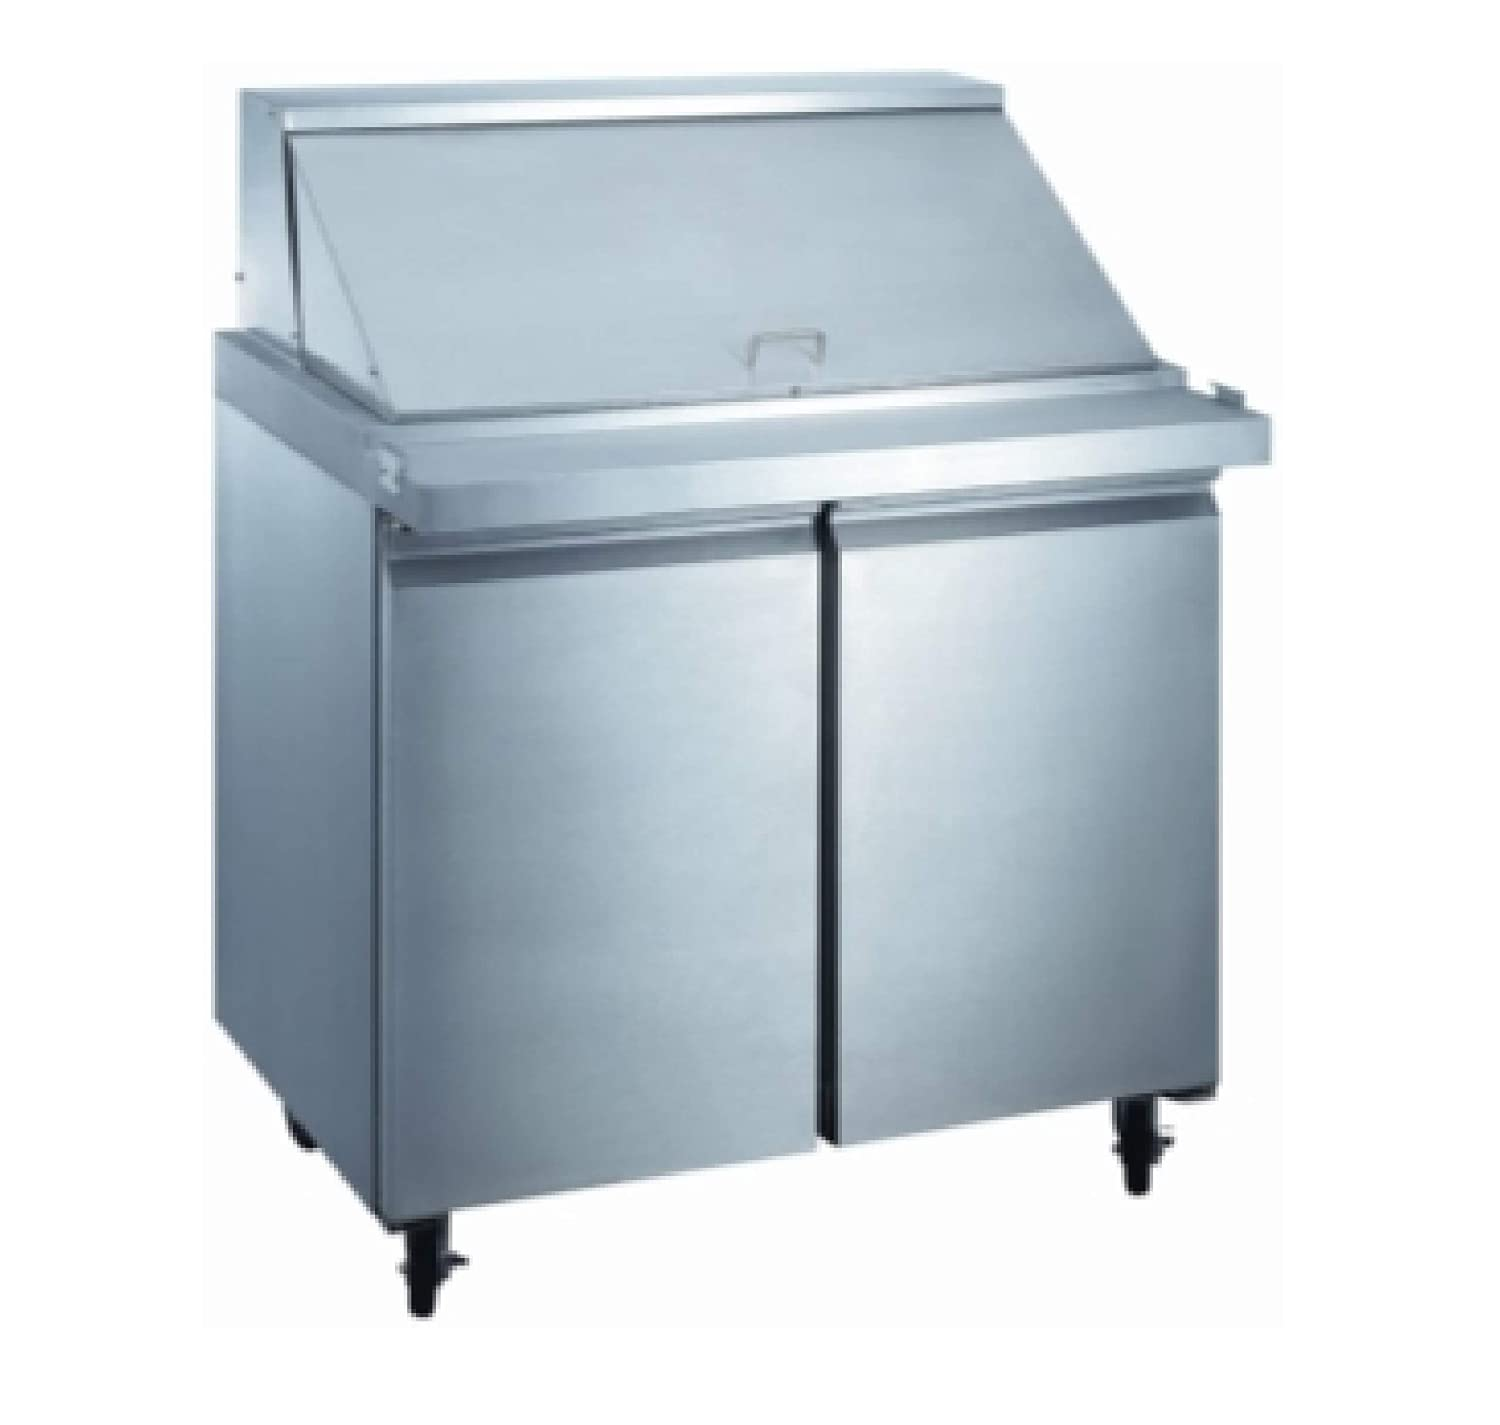 """36"""" Commercial Mega Top Refrigerator Model SCLM2-36 NSF Sandwich Salad Refrigerated Prep Table"""